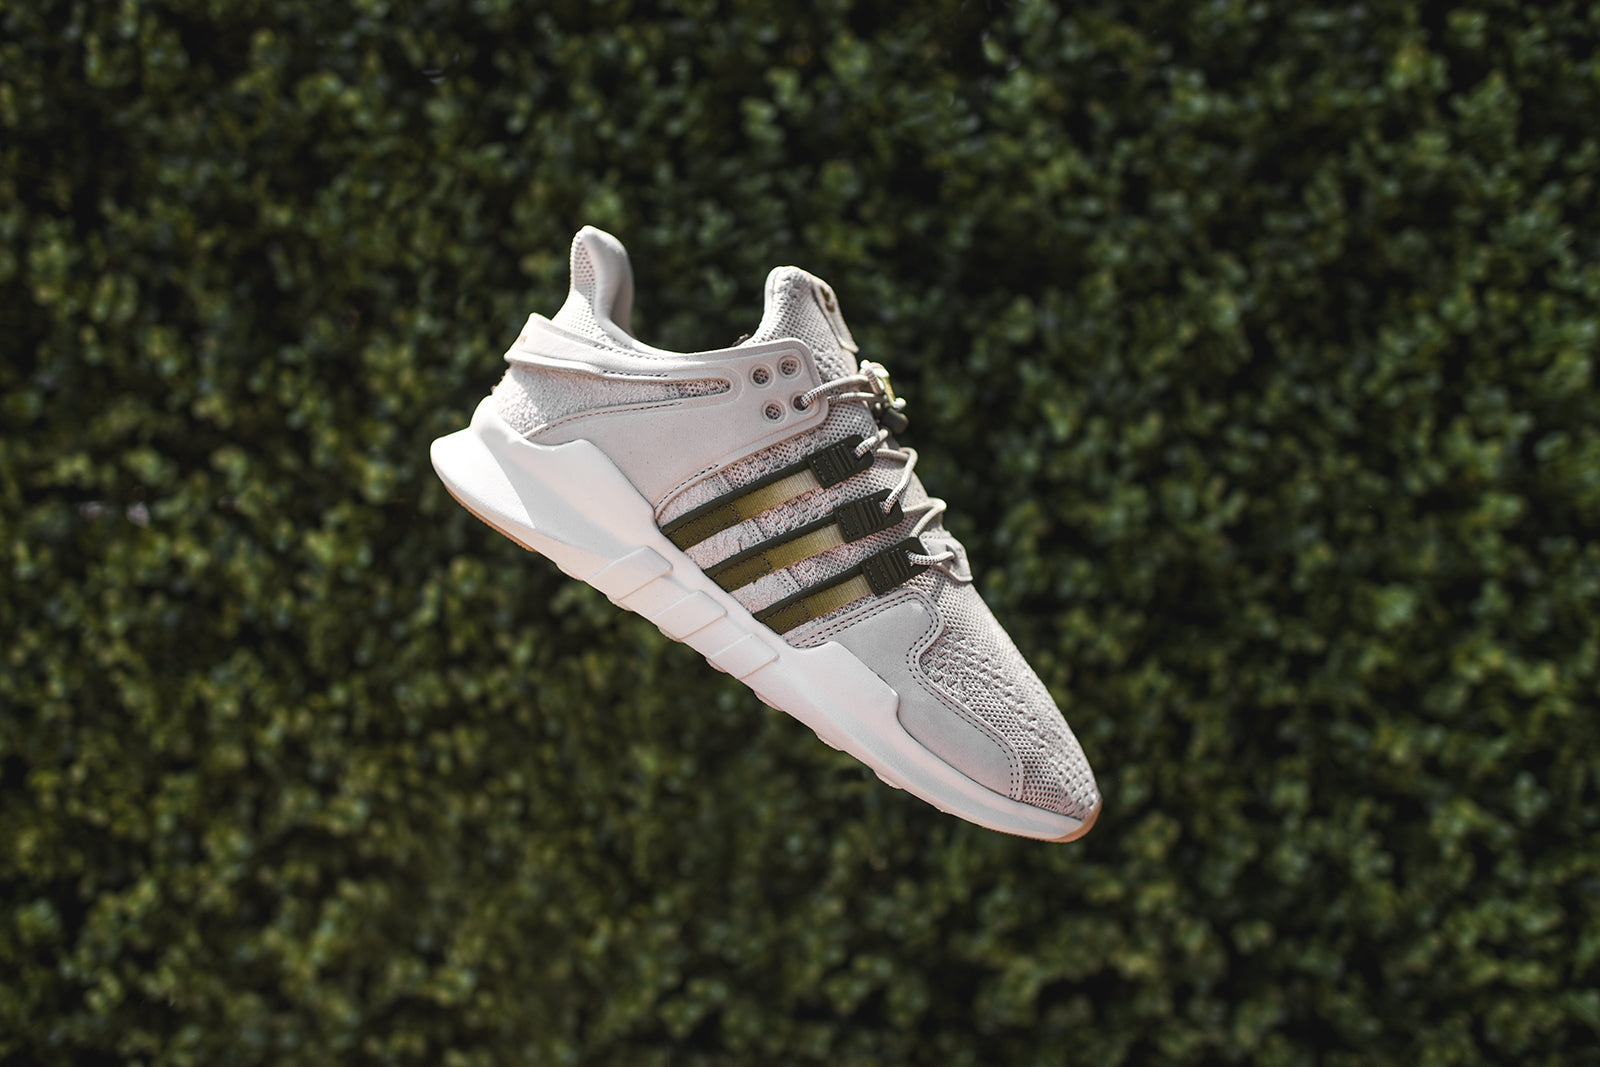 new arrival 09079 43f5b adidas Consortium x Highs and Lows EQT Support ADV - Sand ...